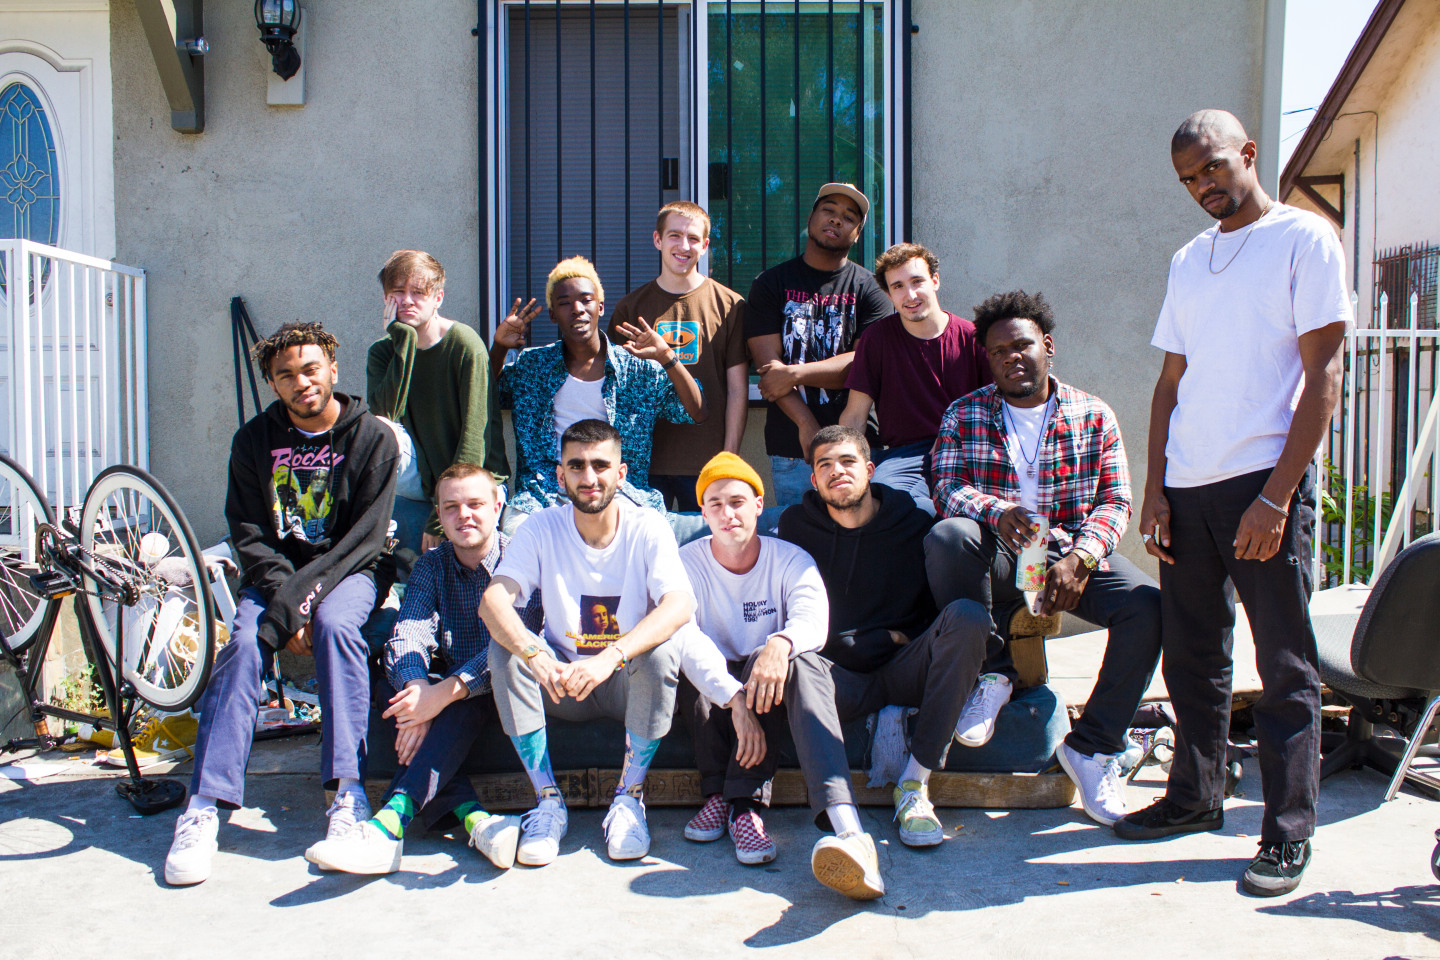 Get To Know The Members Of Brockhampton, A New Kind Of American Boy Band